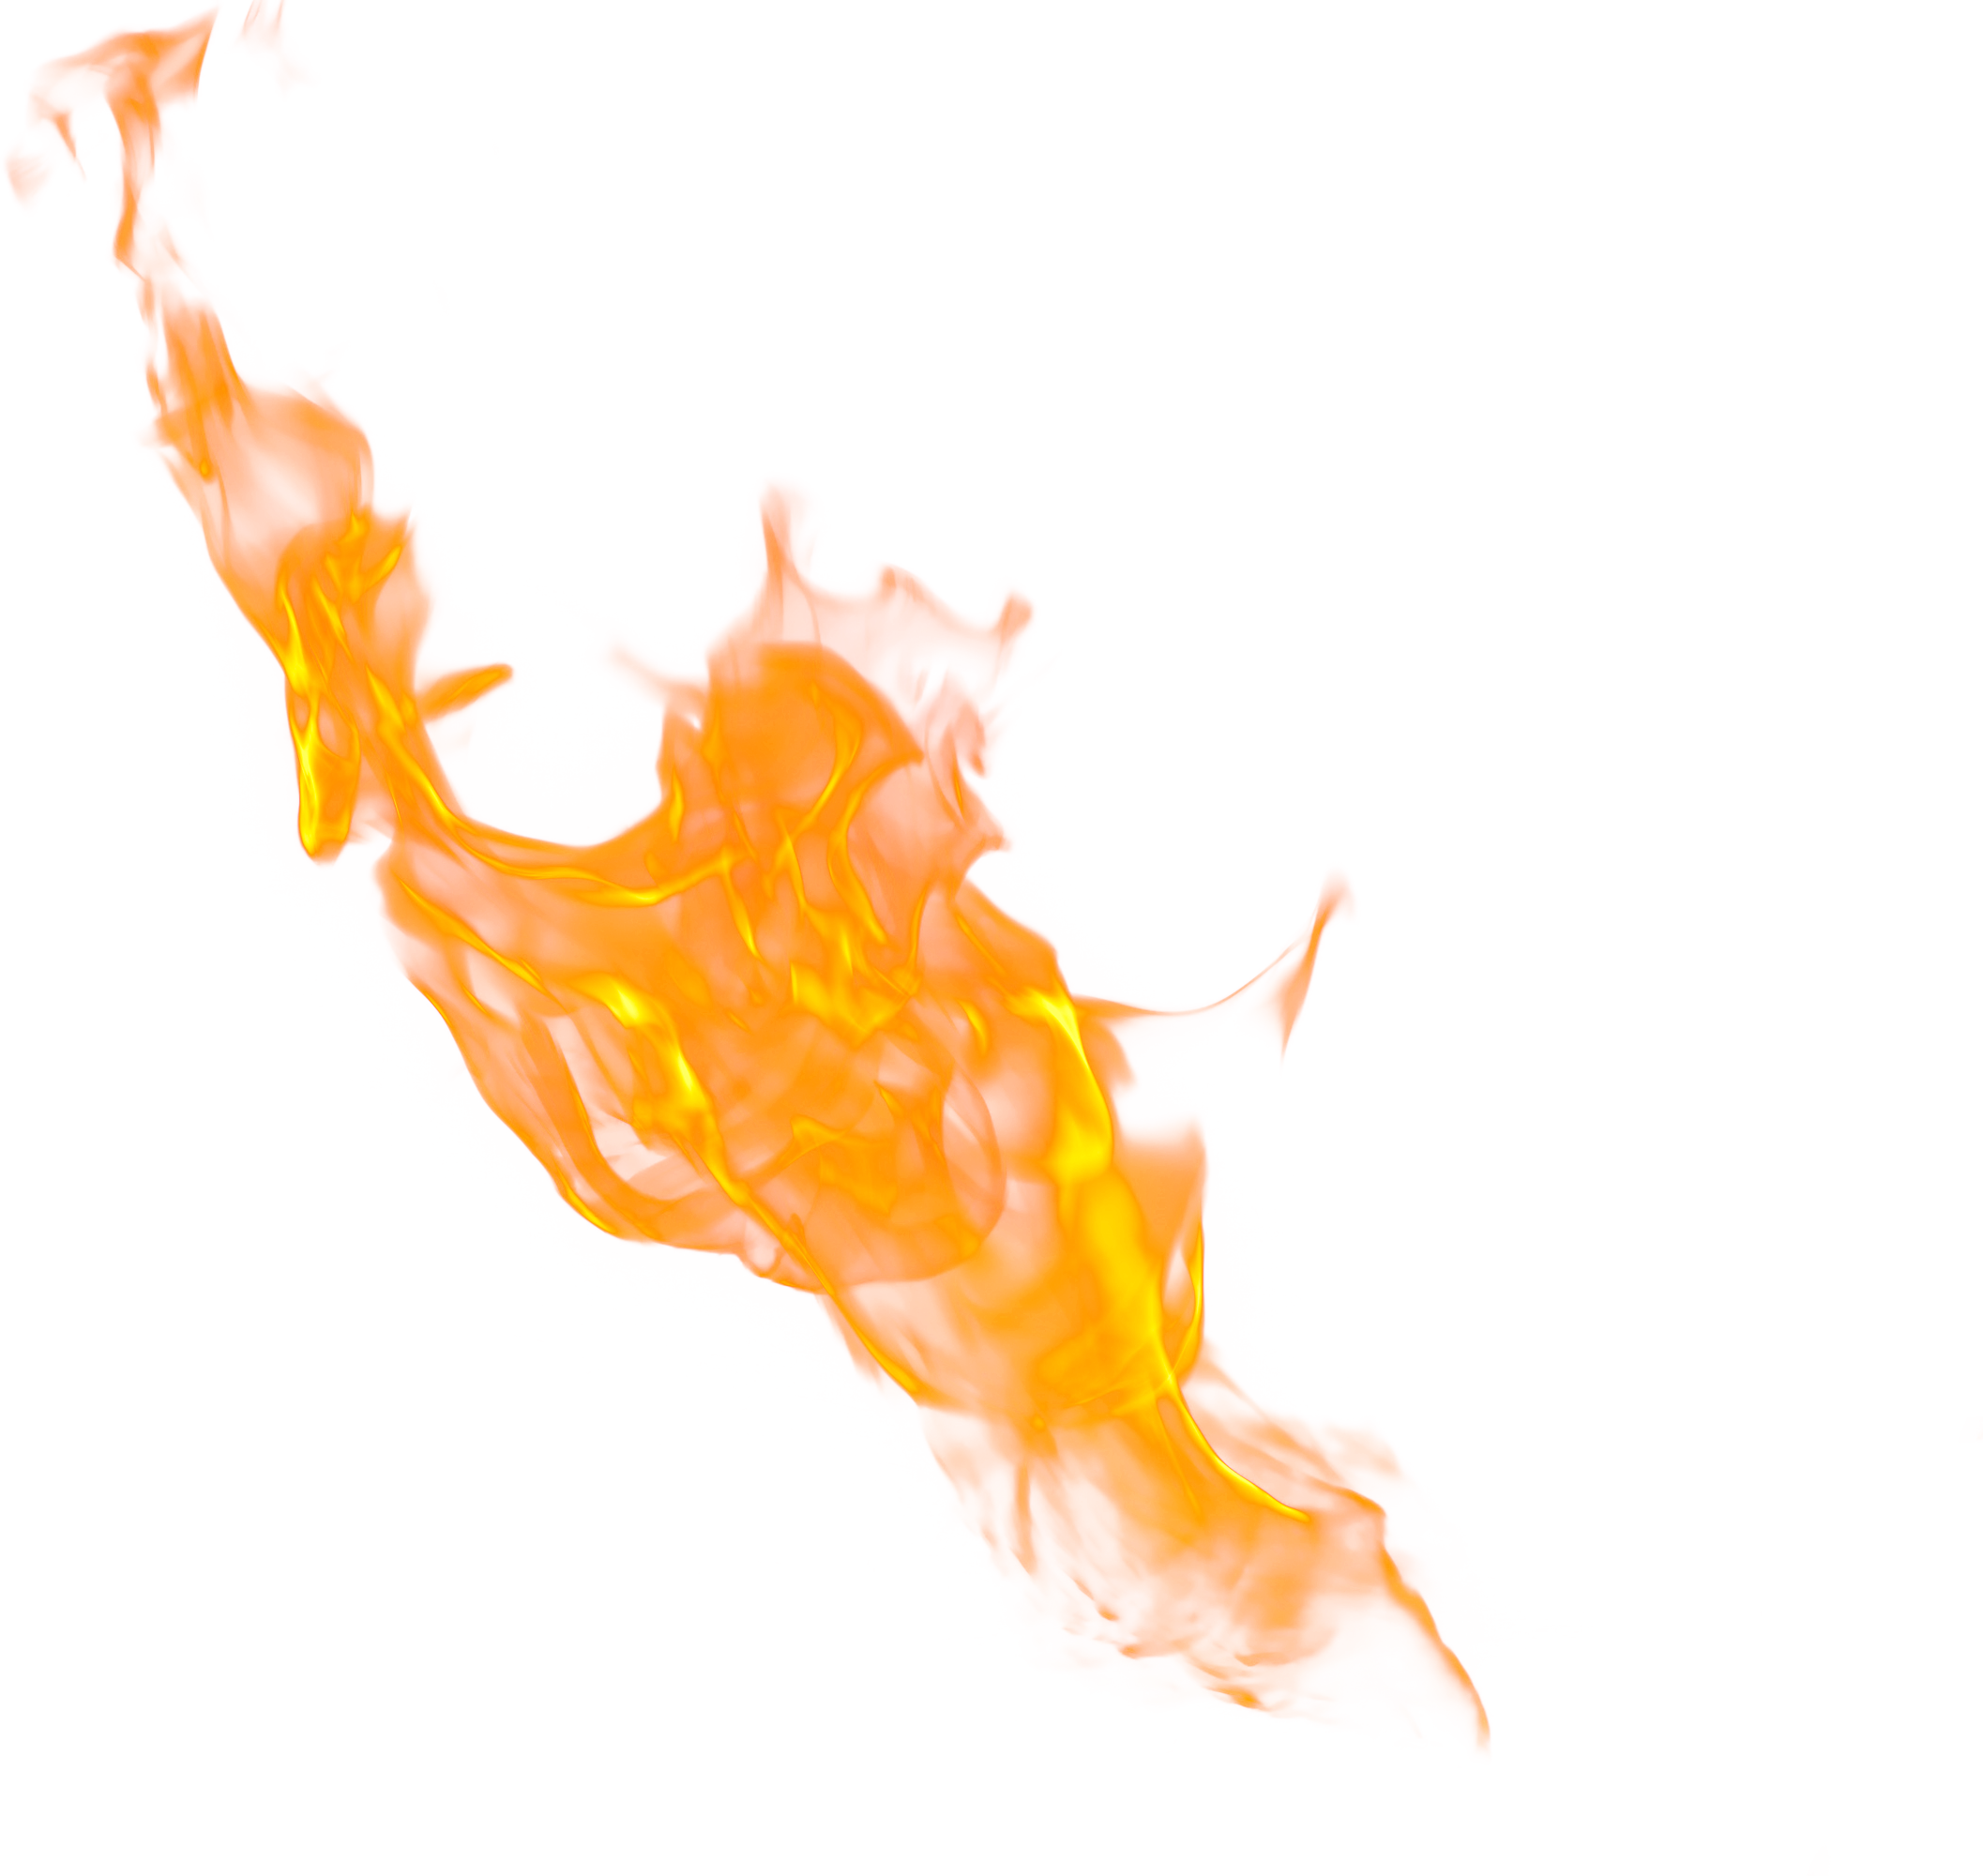 Flames clipart fire. Flame png image purepng